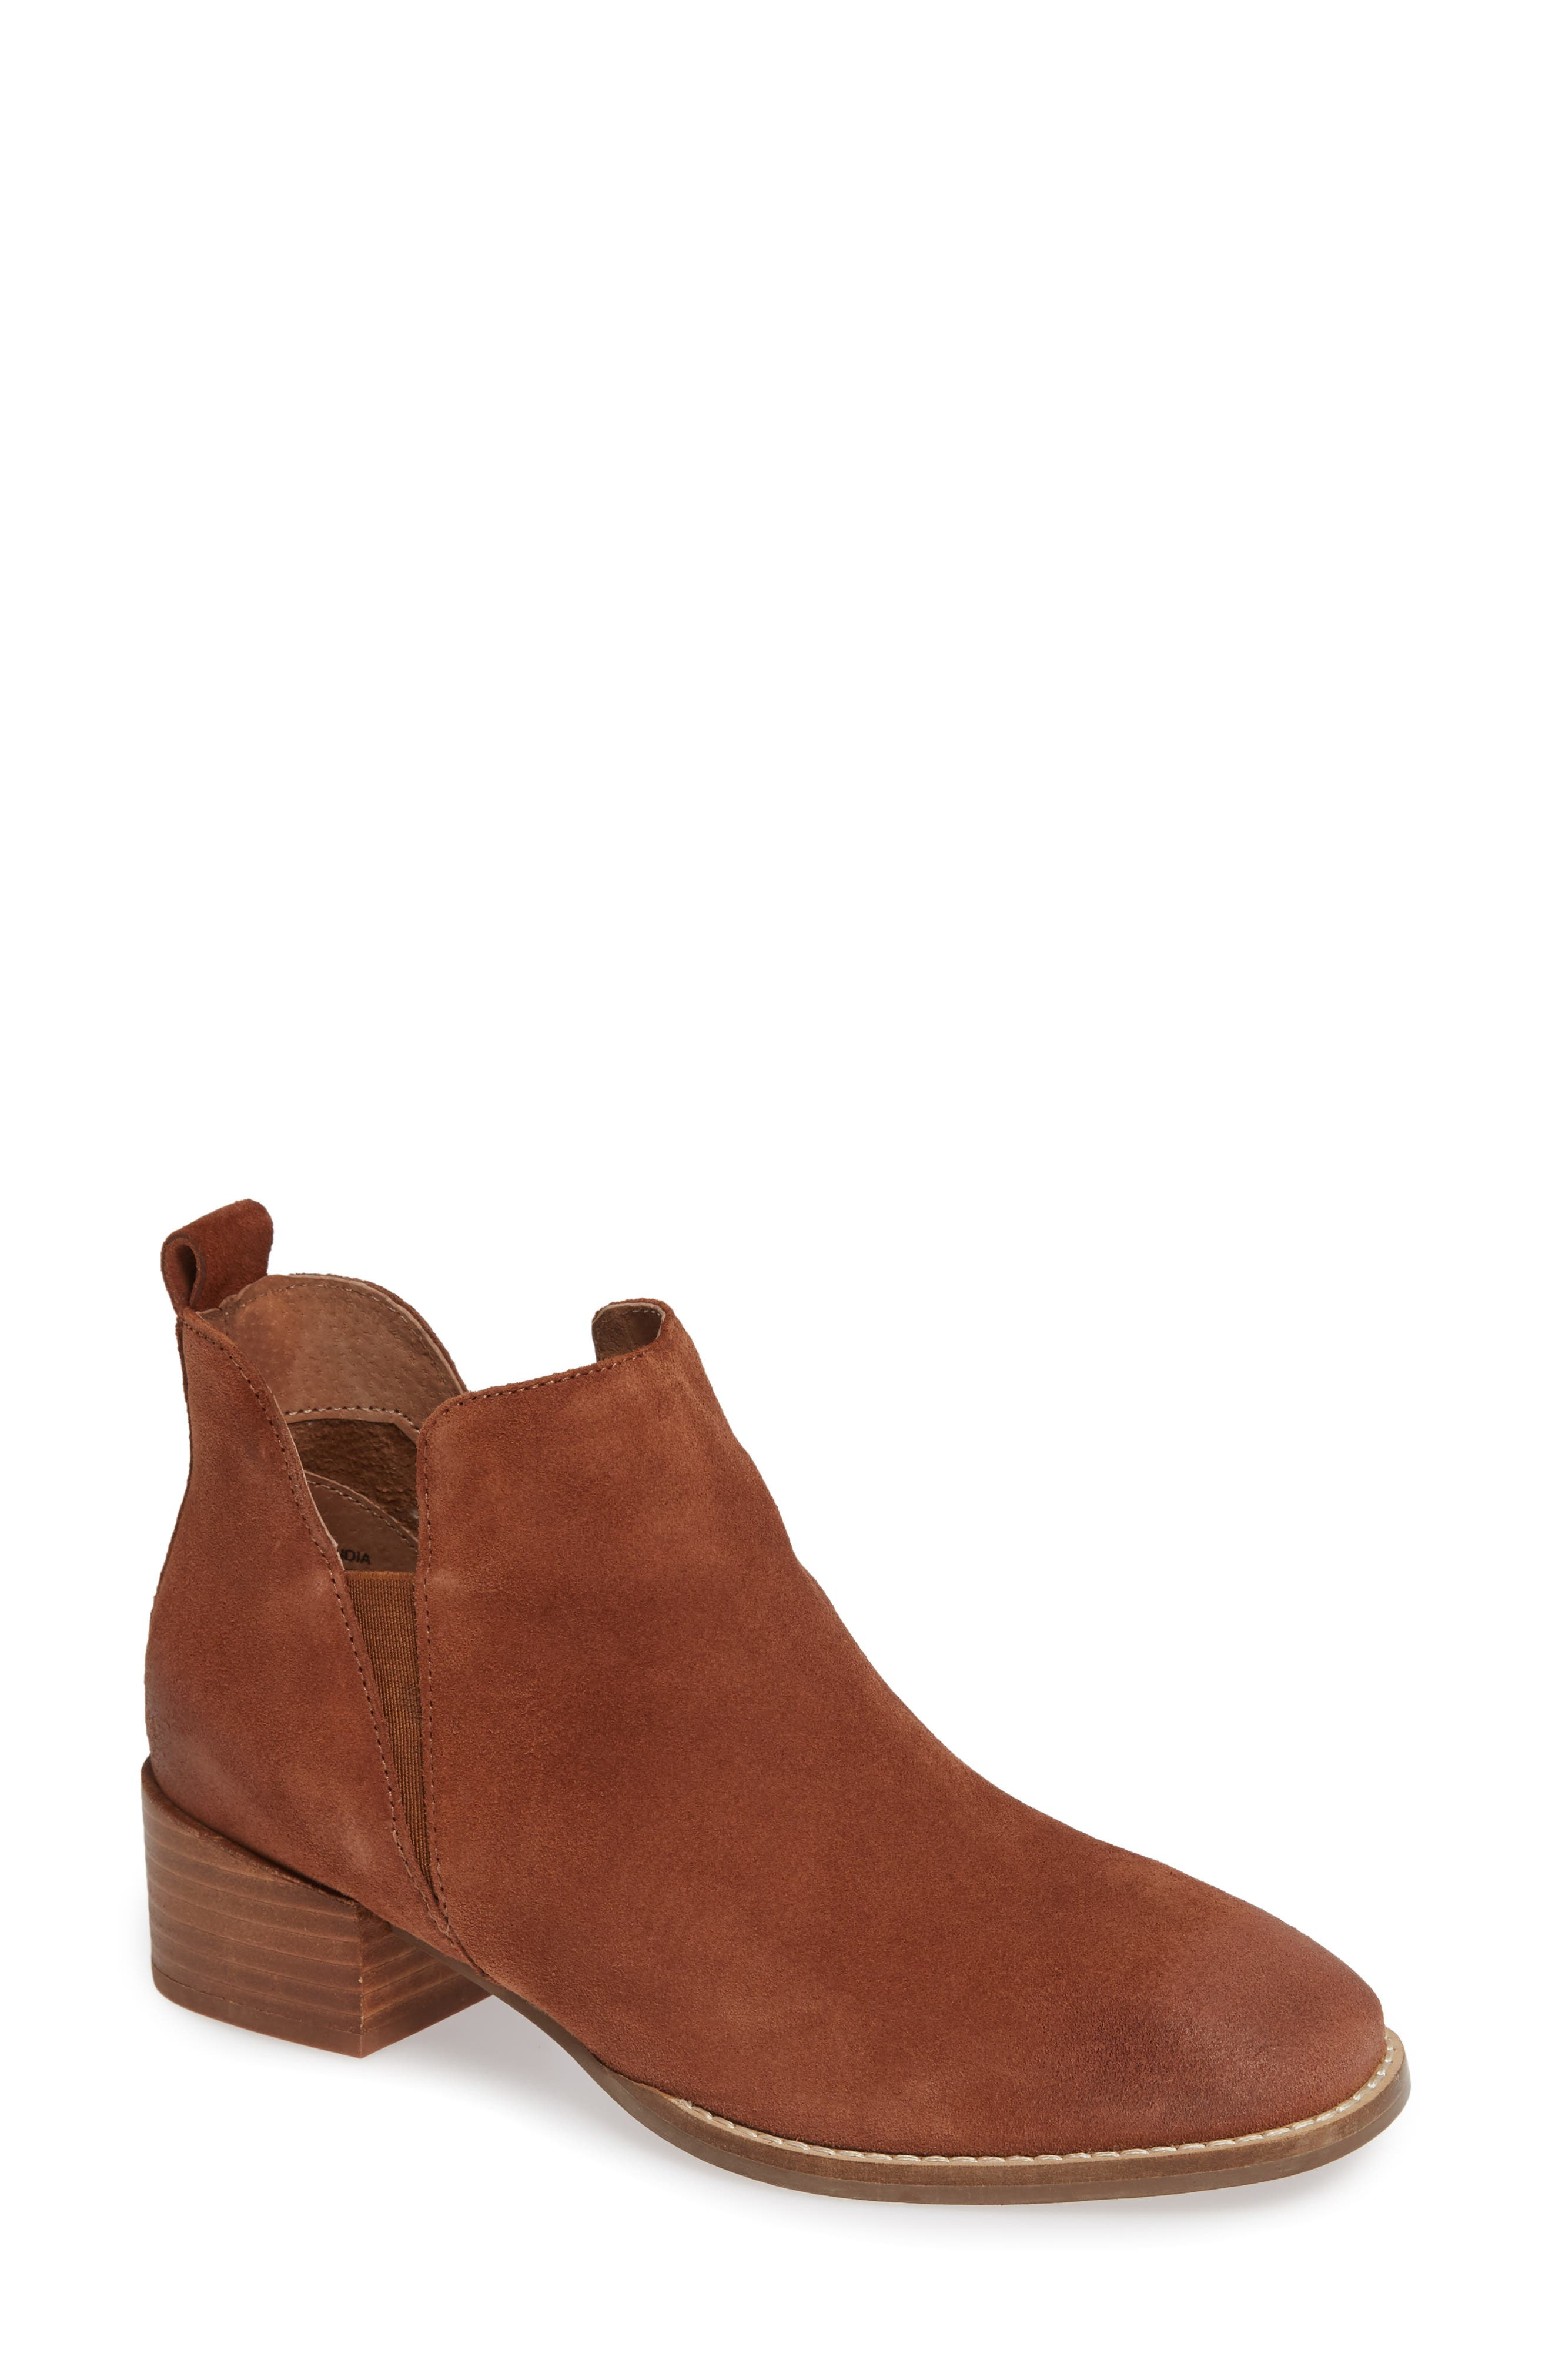 Offstage Boot,                             Main thumbnail 1, color,                             COGNAC SUEDE